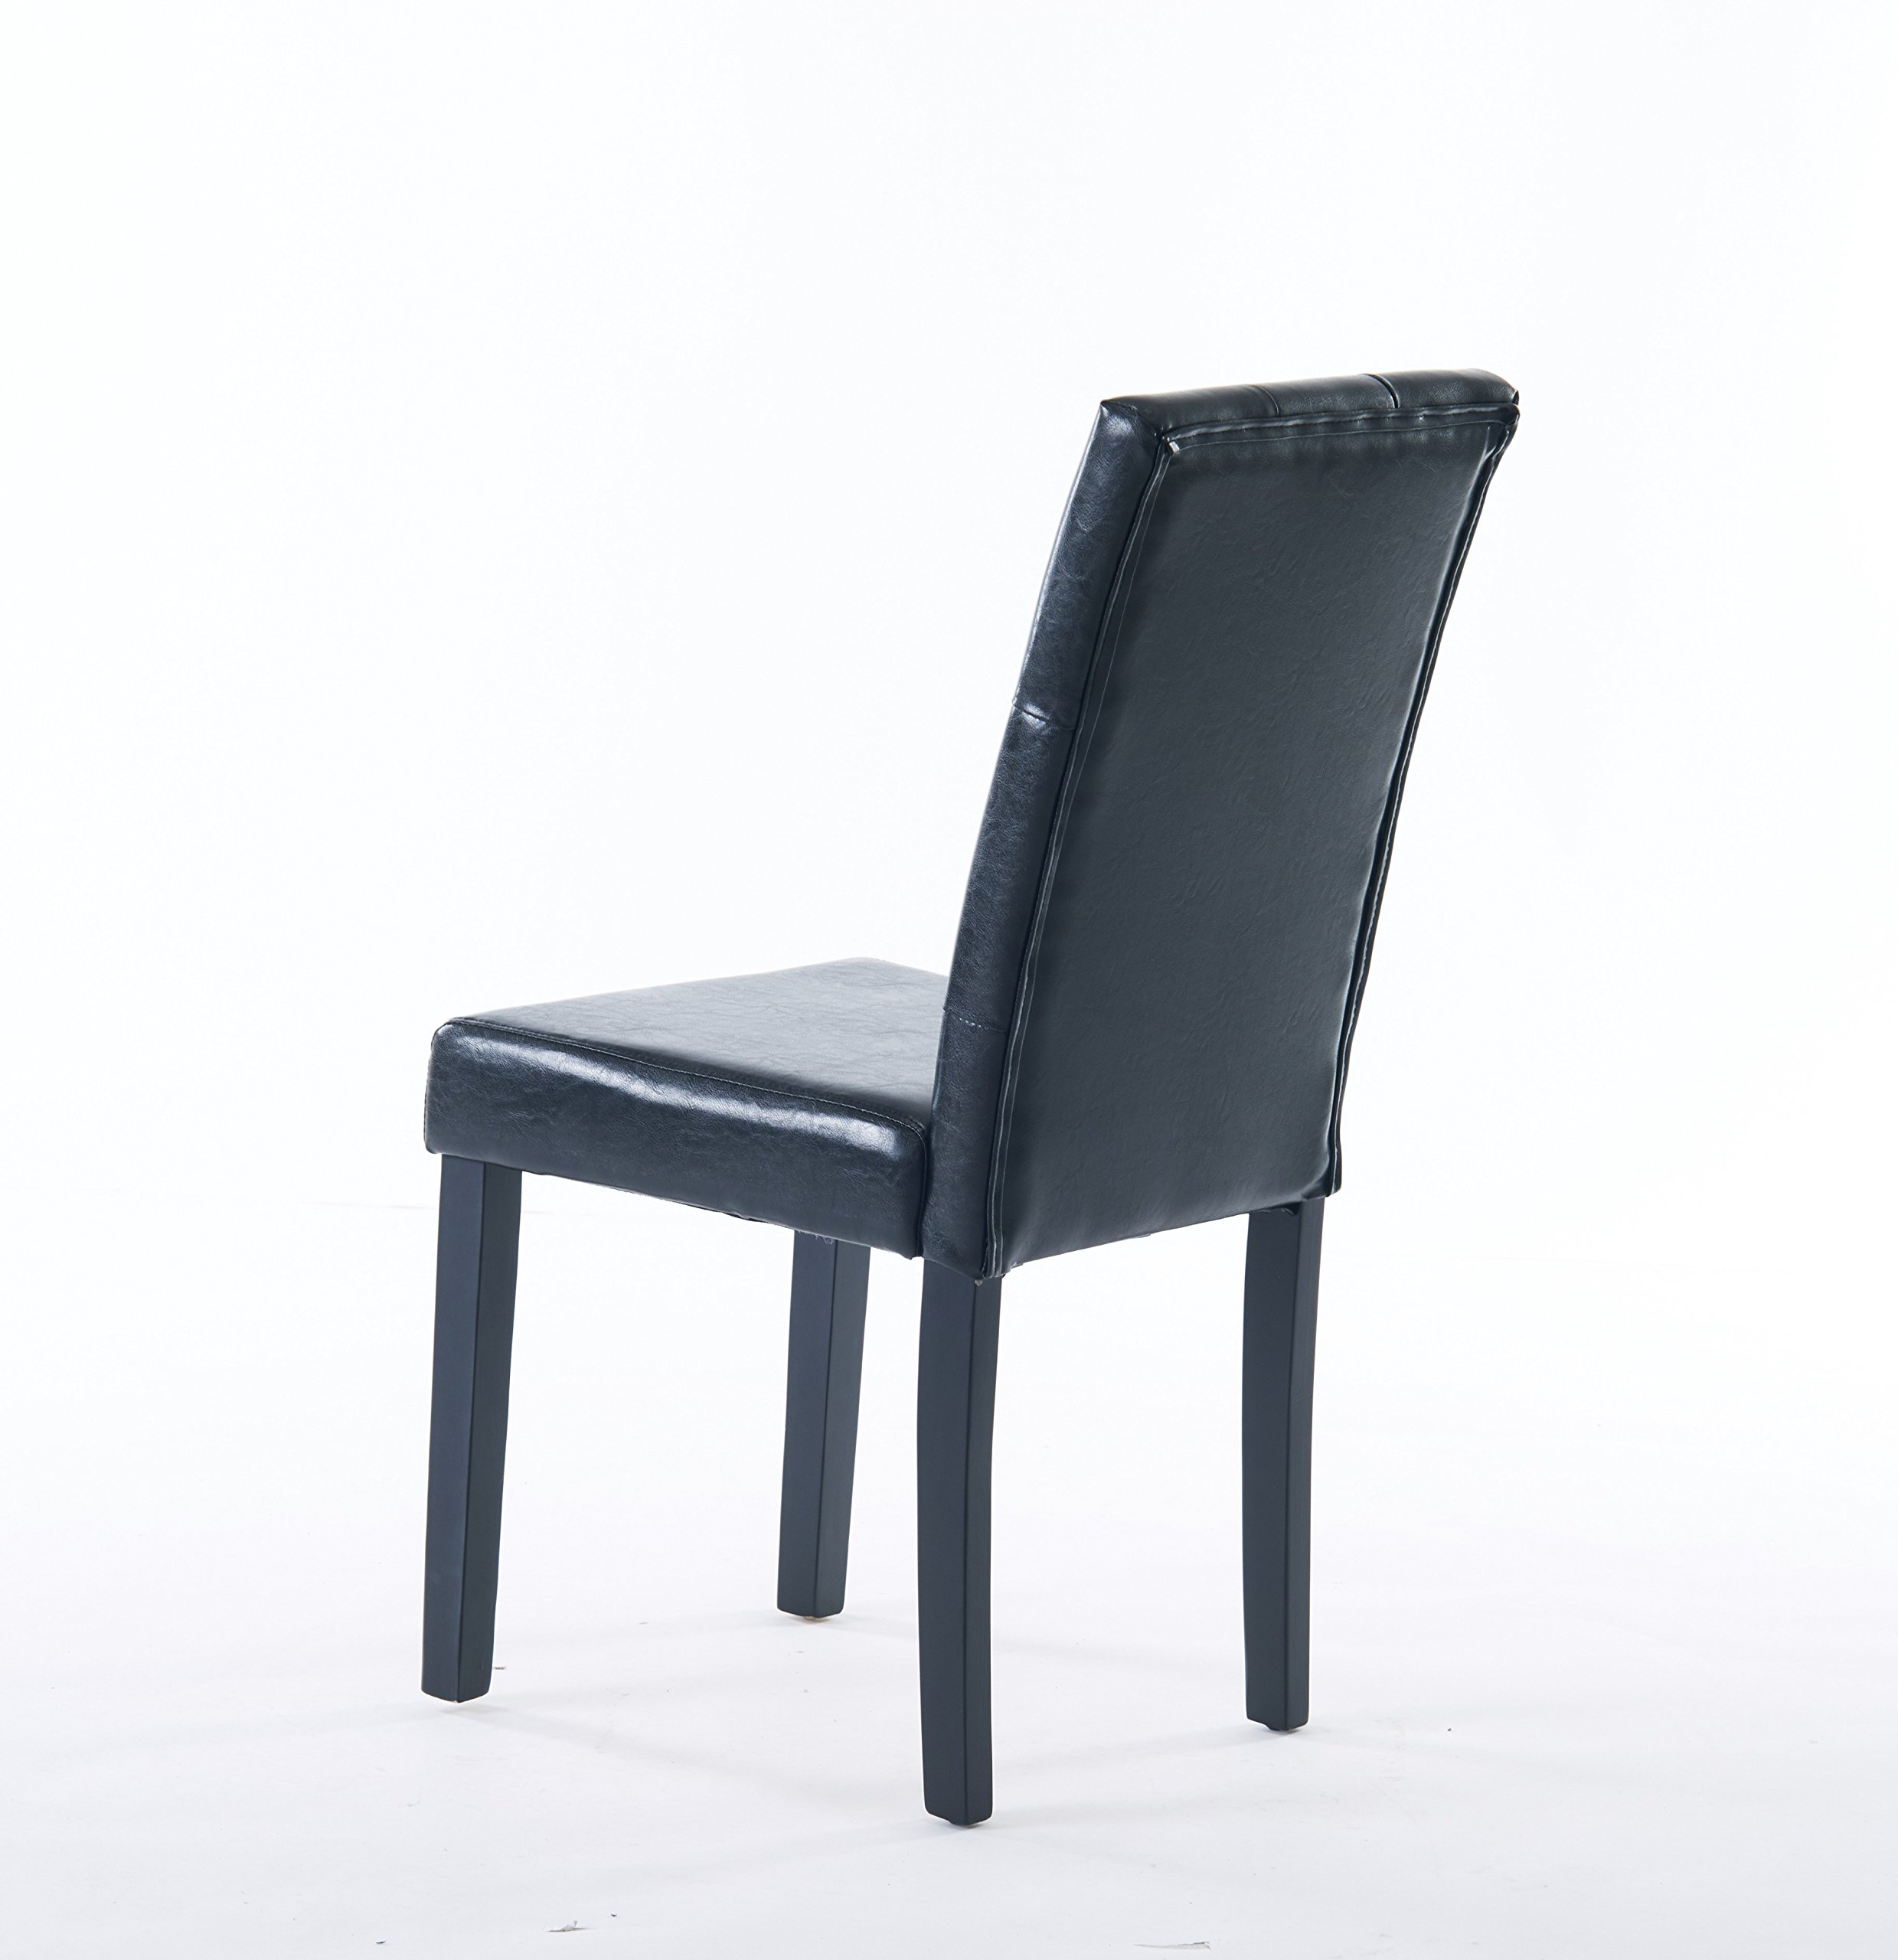 Comfortable Live New Modern Style Dining Chair in Home and Garden with Leather Set of 2(black) by Comfortable live (Image #5)